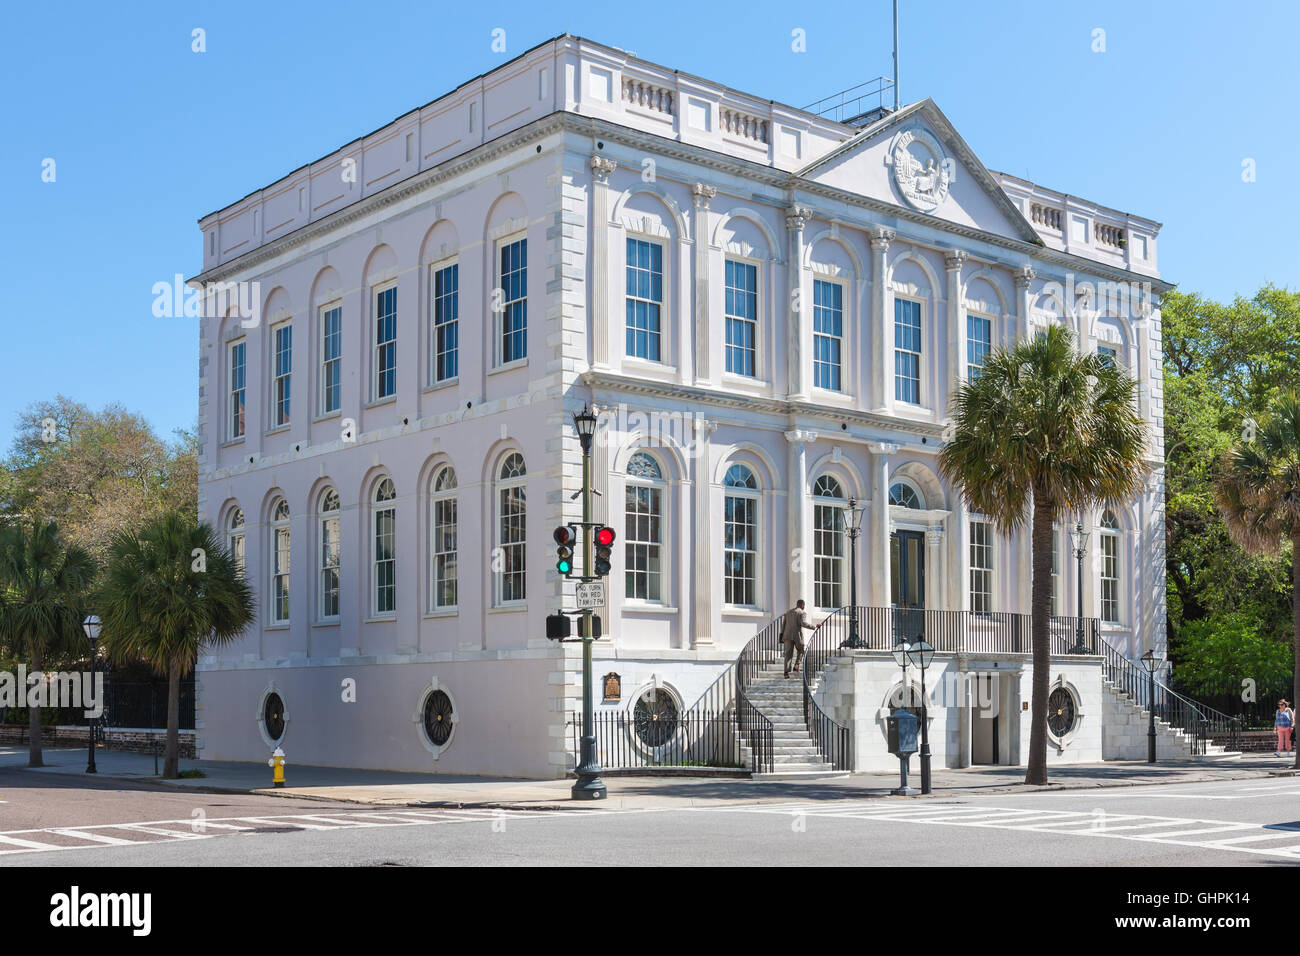 The historic Adamesque City Hall on Broad Street in Charleston, South Carolina. - Stock Image